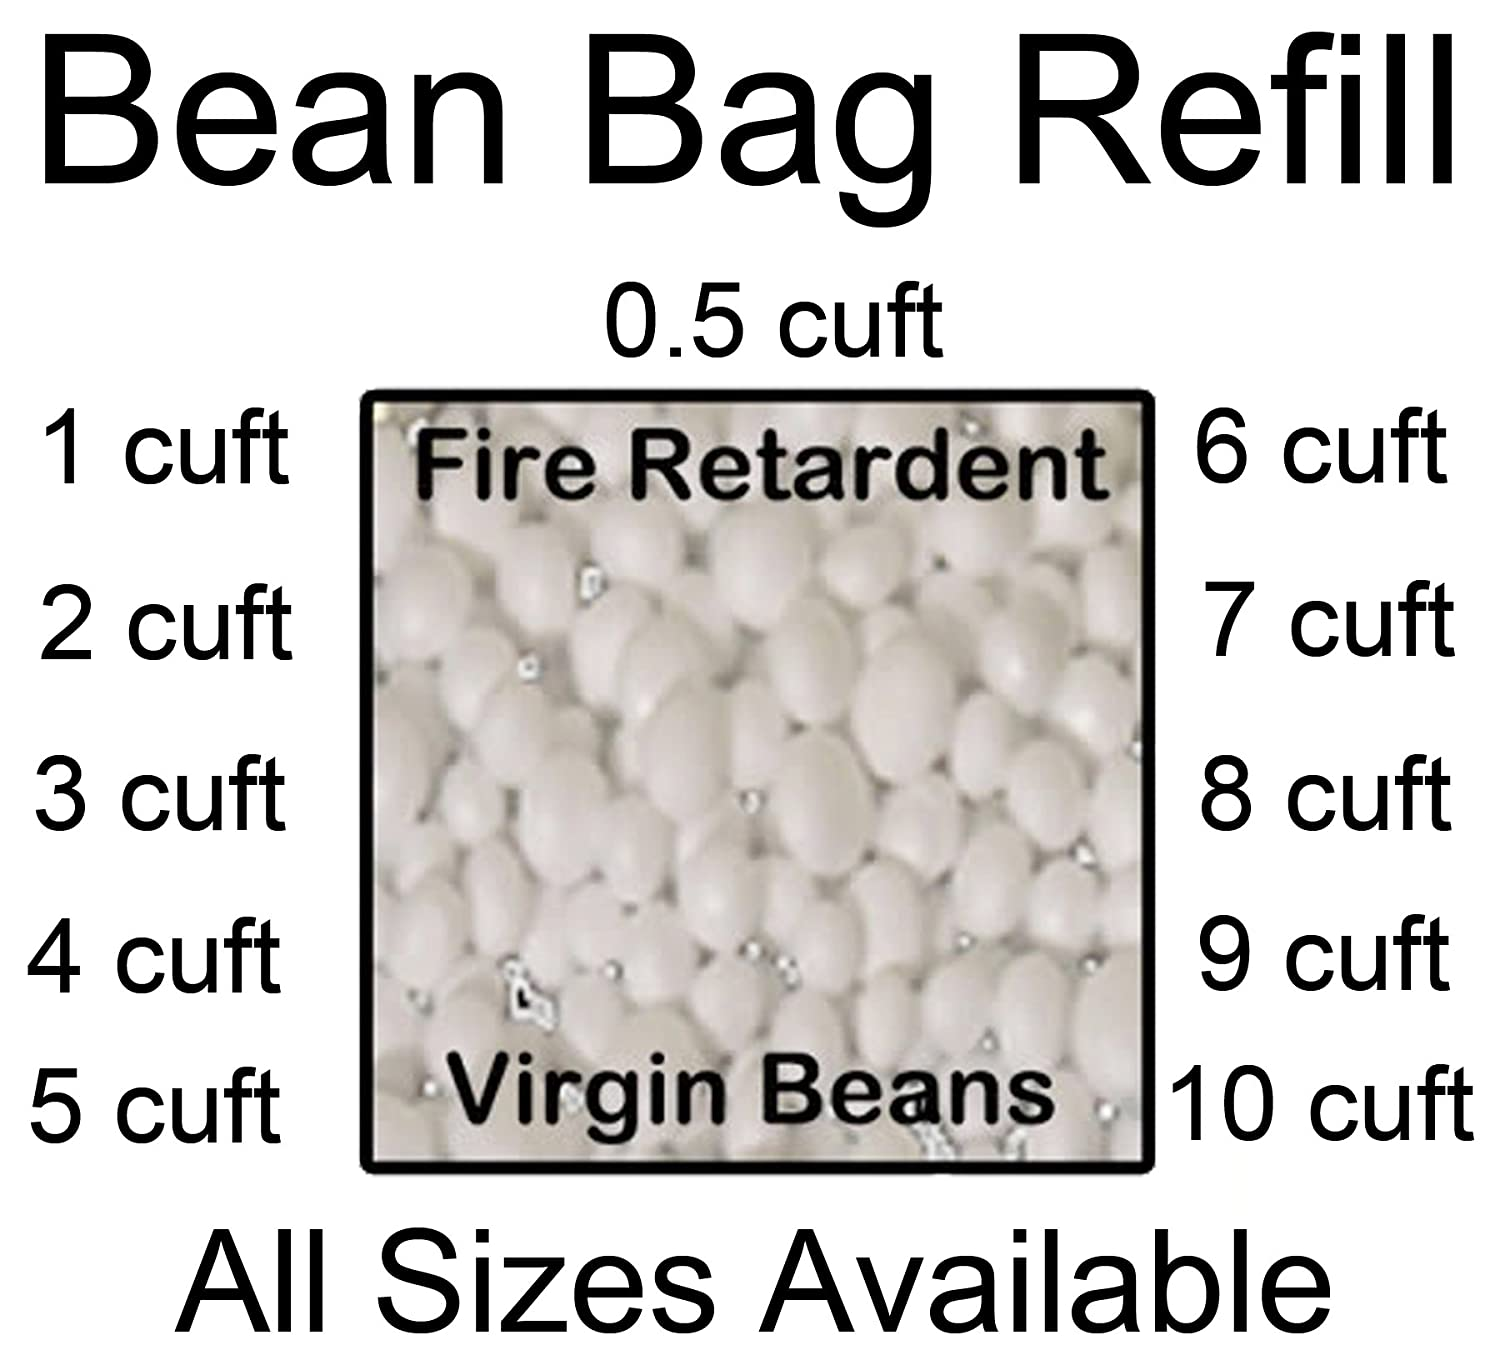 gilda bean bag top up refill polystyrene beads filling bag fire retardent beans 2 cubic foot amazoncouk kitchen u0026 home - Polystyrene Beads